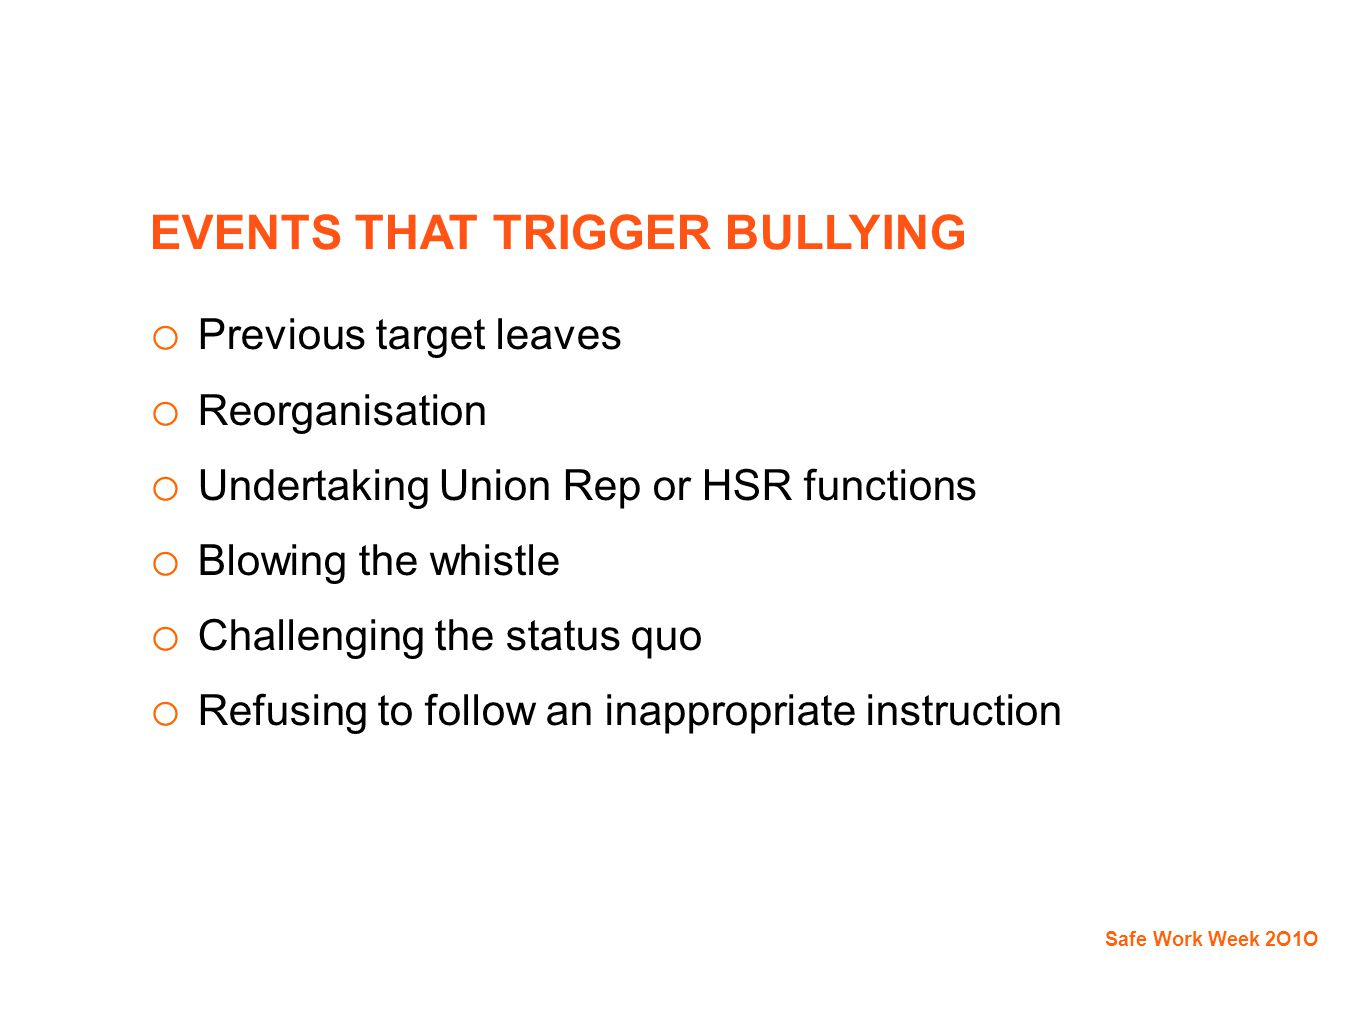 EVENTS THAT TRIGGER BULLYING o Previous target leaves o Reorganisation o Undertaking Union Rep or HSR functions o Blowing the whistle o Challenging the status quo o Refusing to follow an inappropriate instruction Safe Work Week 2O1O